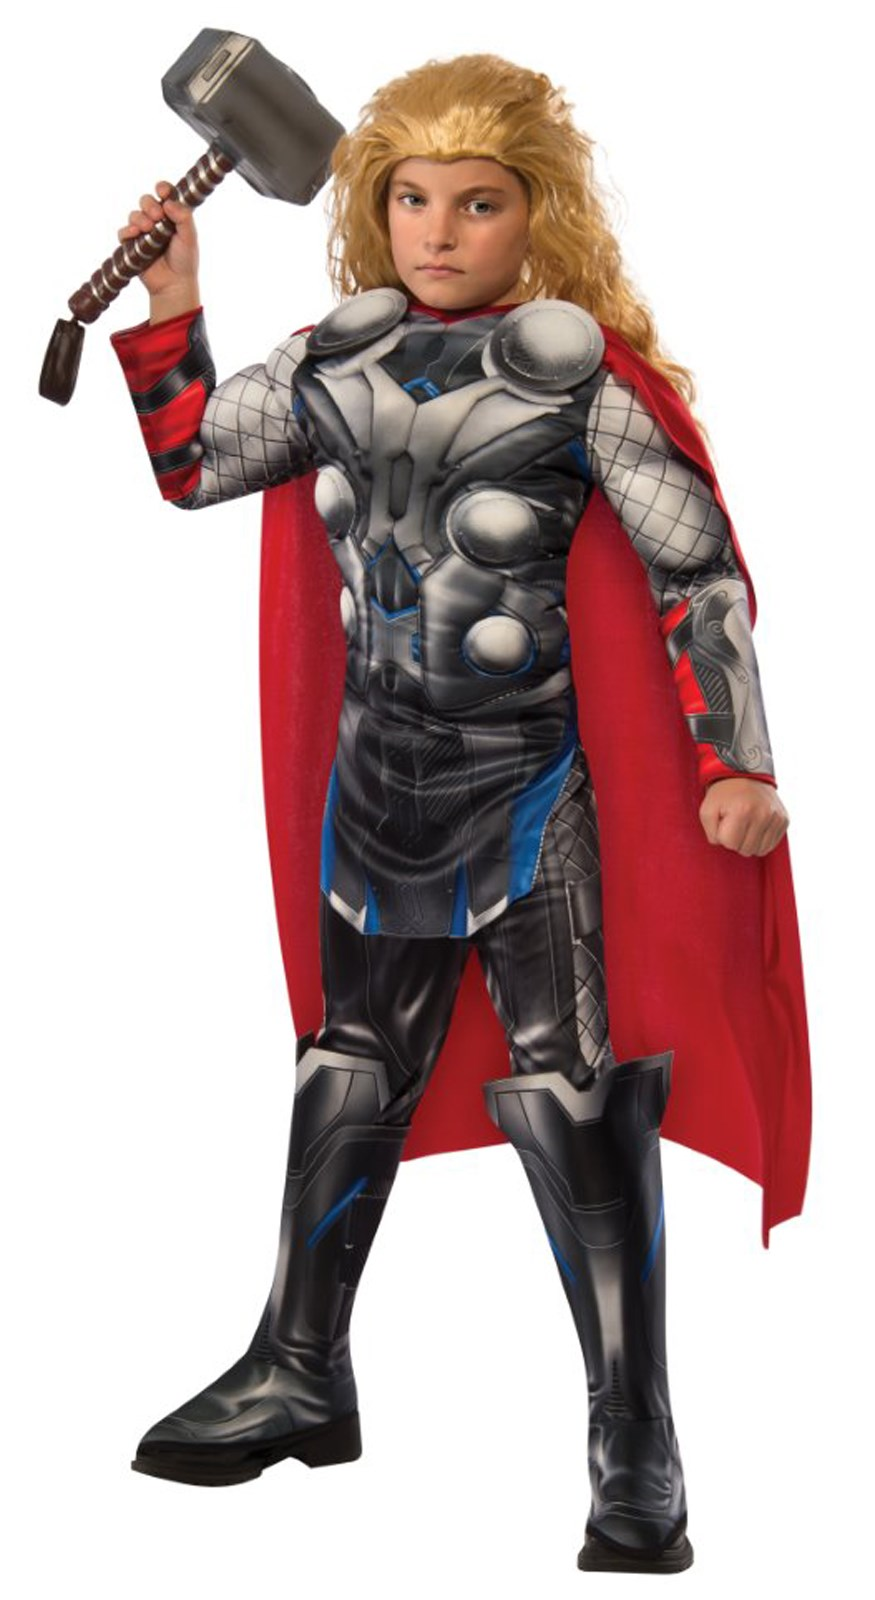 Avengers 2 - Age of Ultron: Deluxe Kids Thor Costume Medium (8-10)